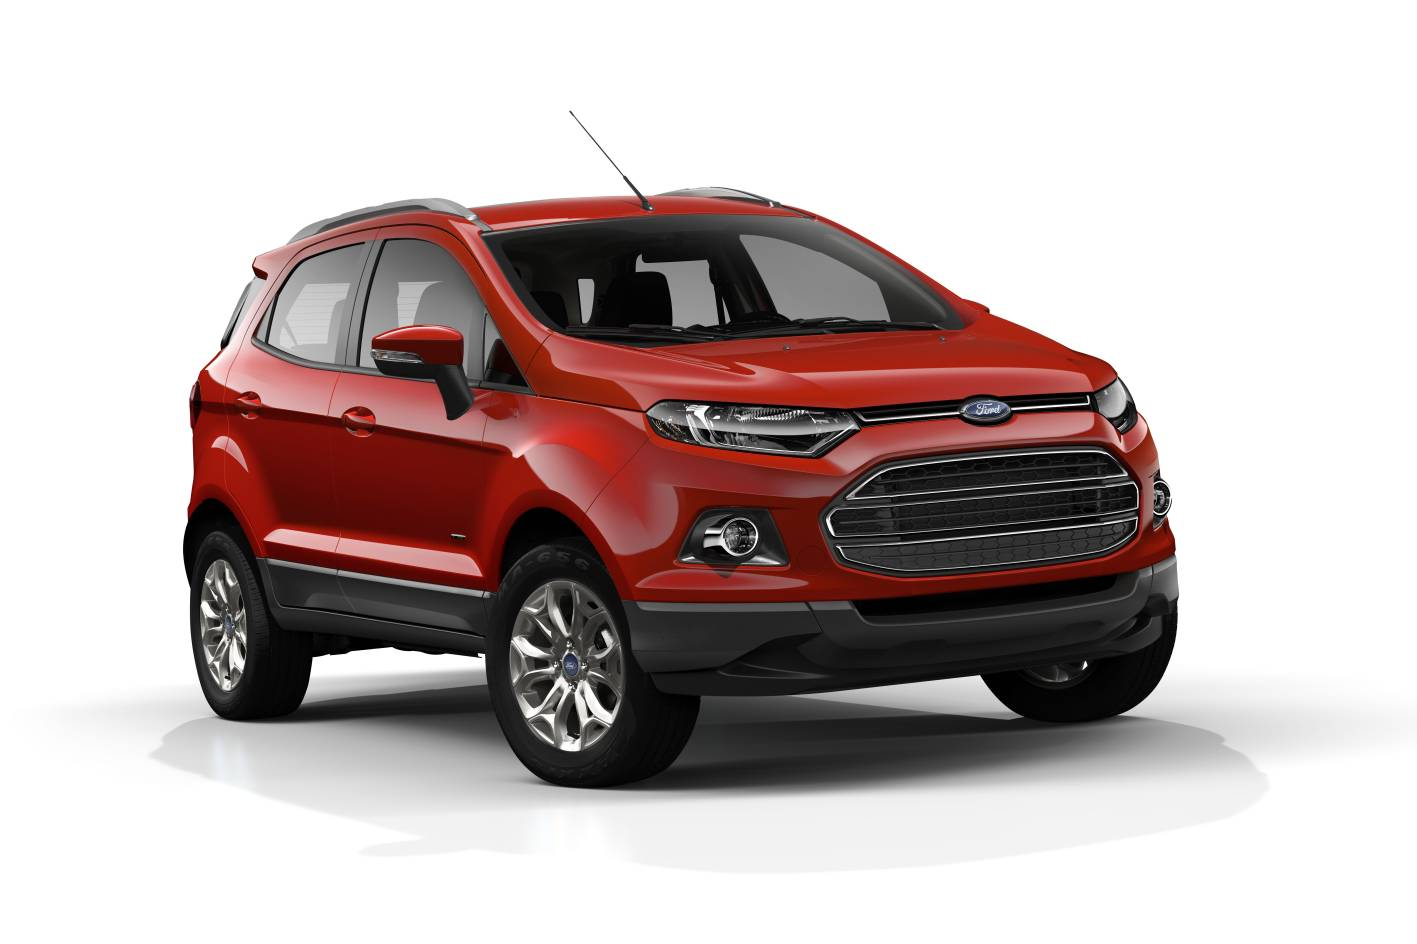 news sydney debut for ford s all new ecosport compact suv. Black Bedroom Furniture Sets. Home Design Ideas